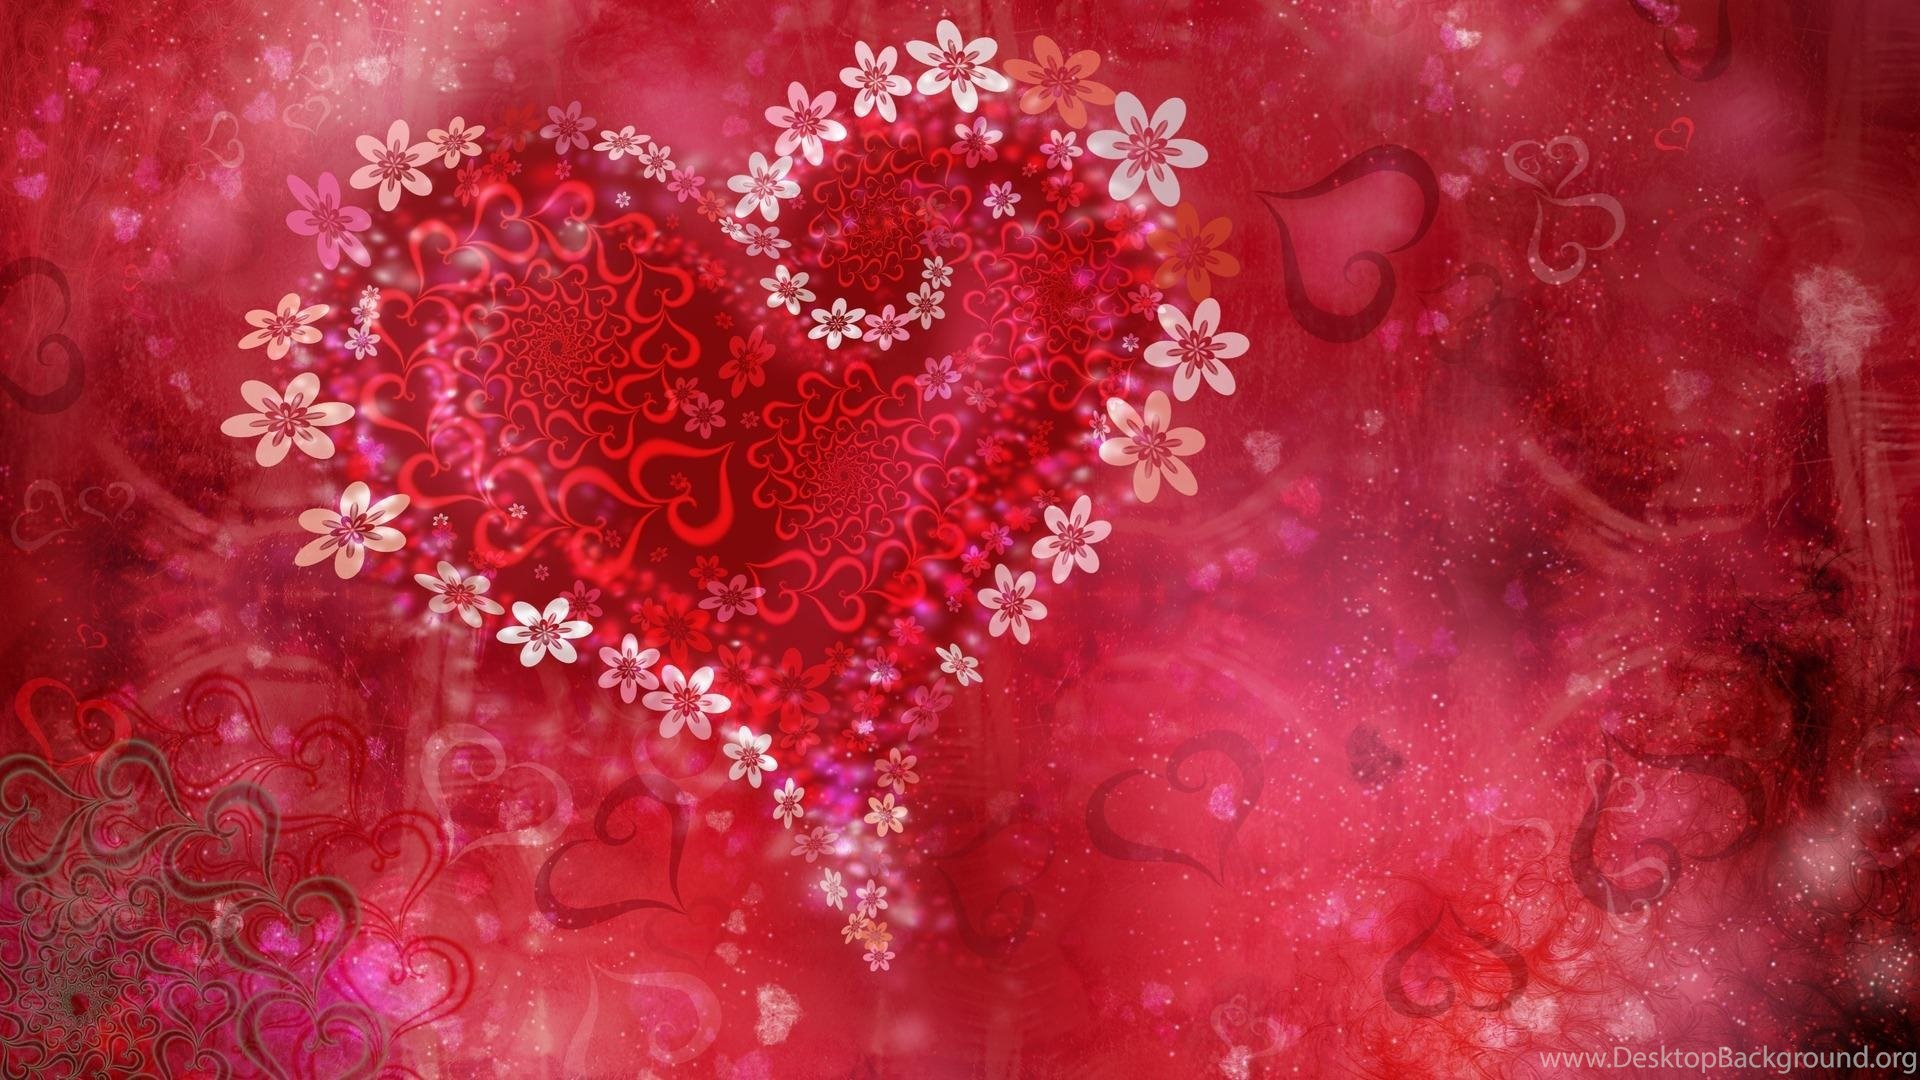 Love Heart Images Pictures Wallpapers Download Free Desktop Background